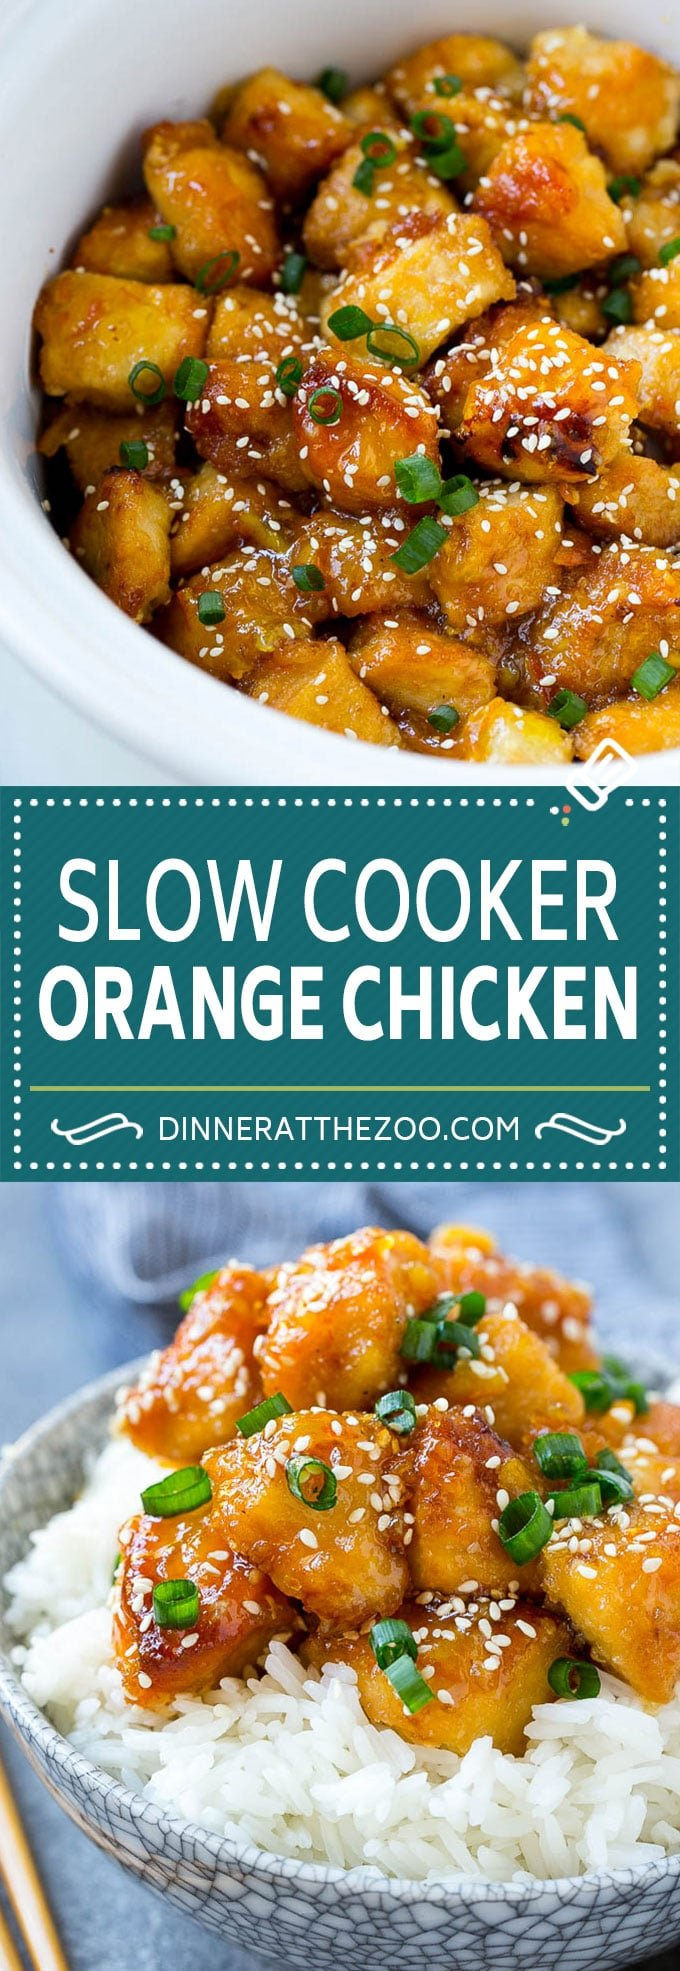 Slow Cooker Orange Chicken Dinner At The Zoo